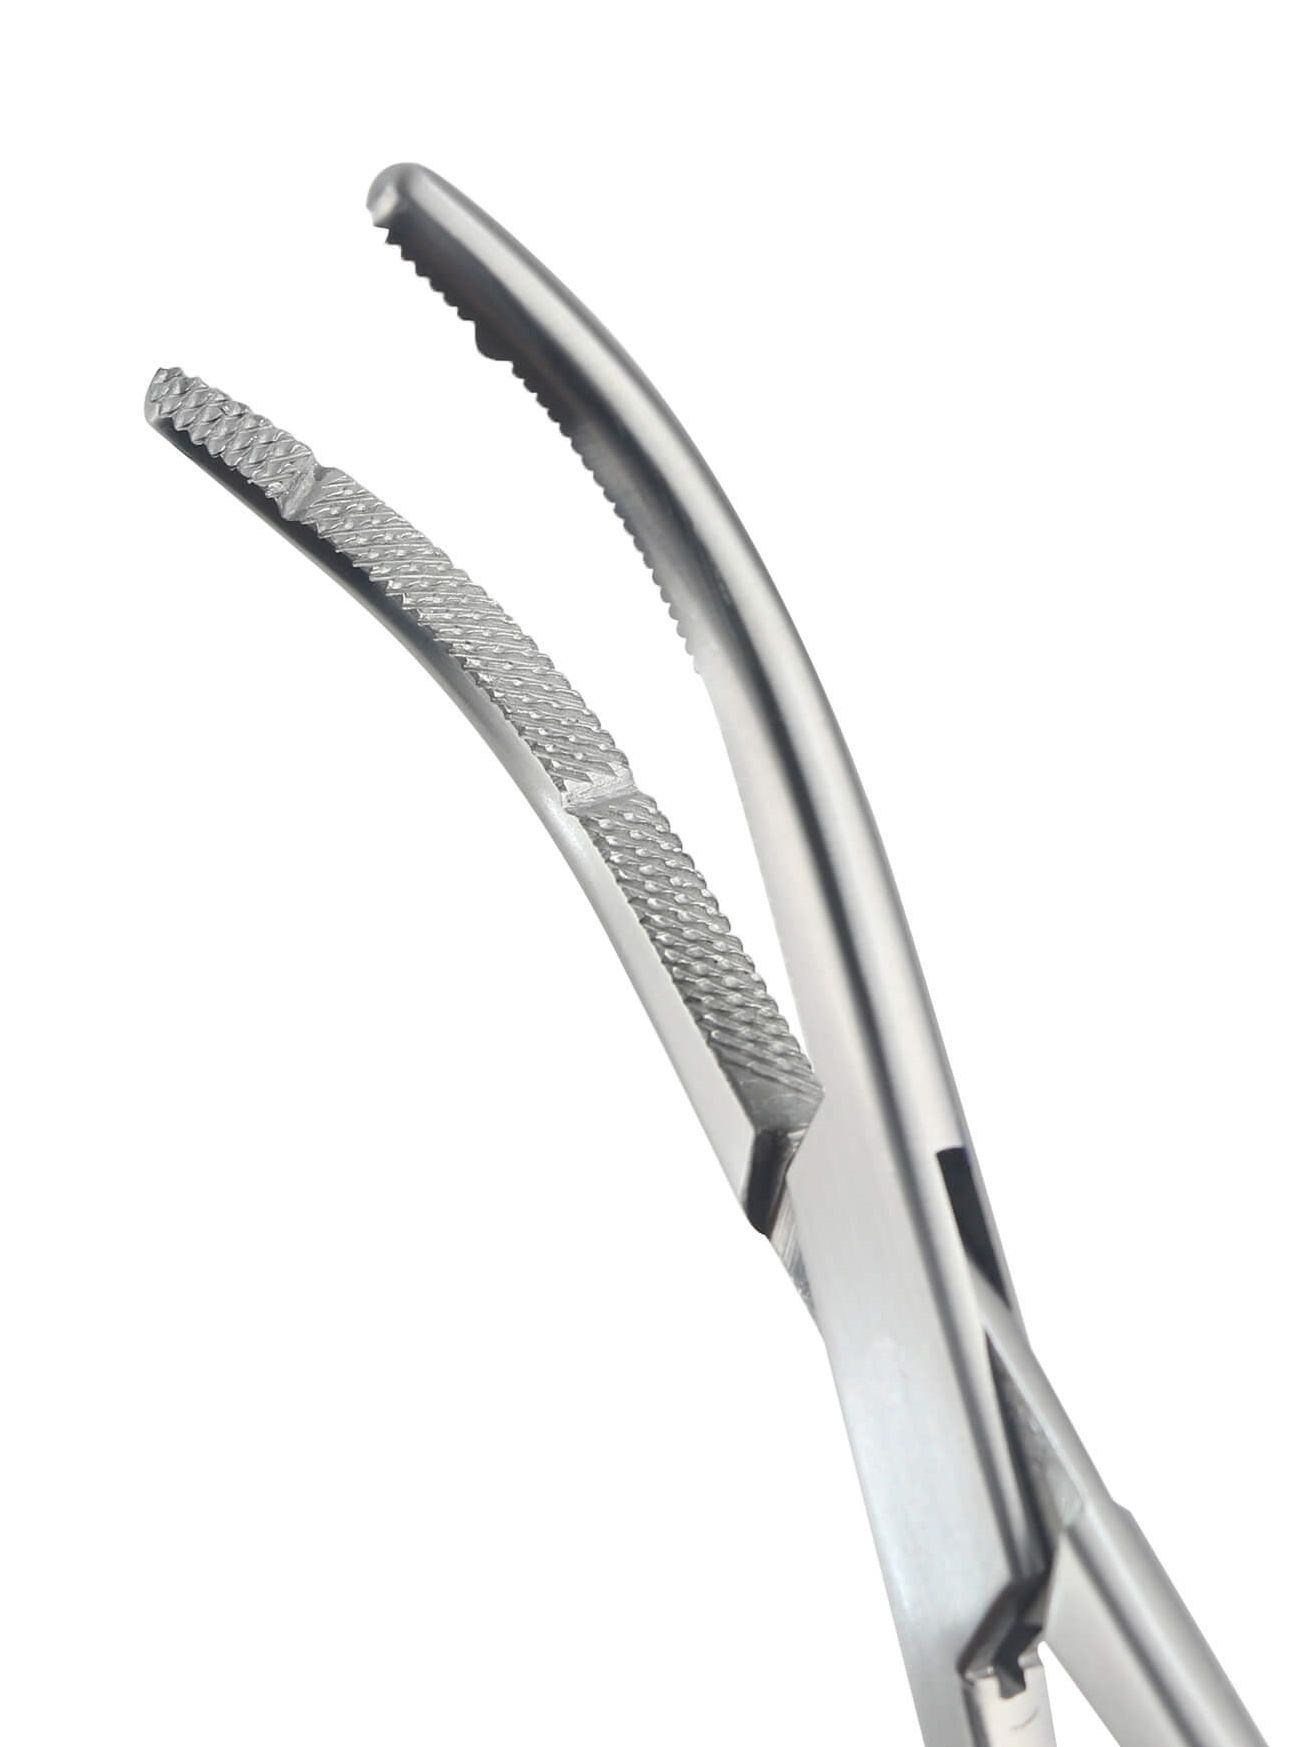 Forcep, Heaney Modif. Hysterectomy And Haemostatic Curved 245 mm